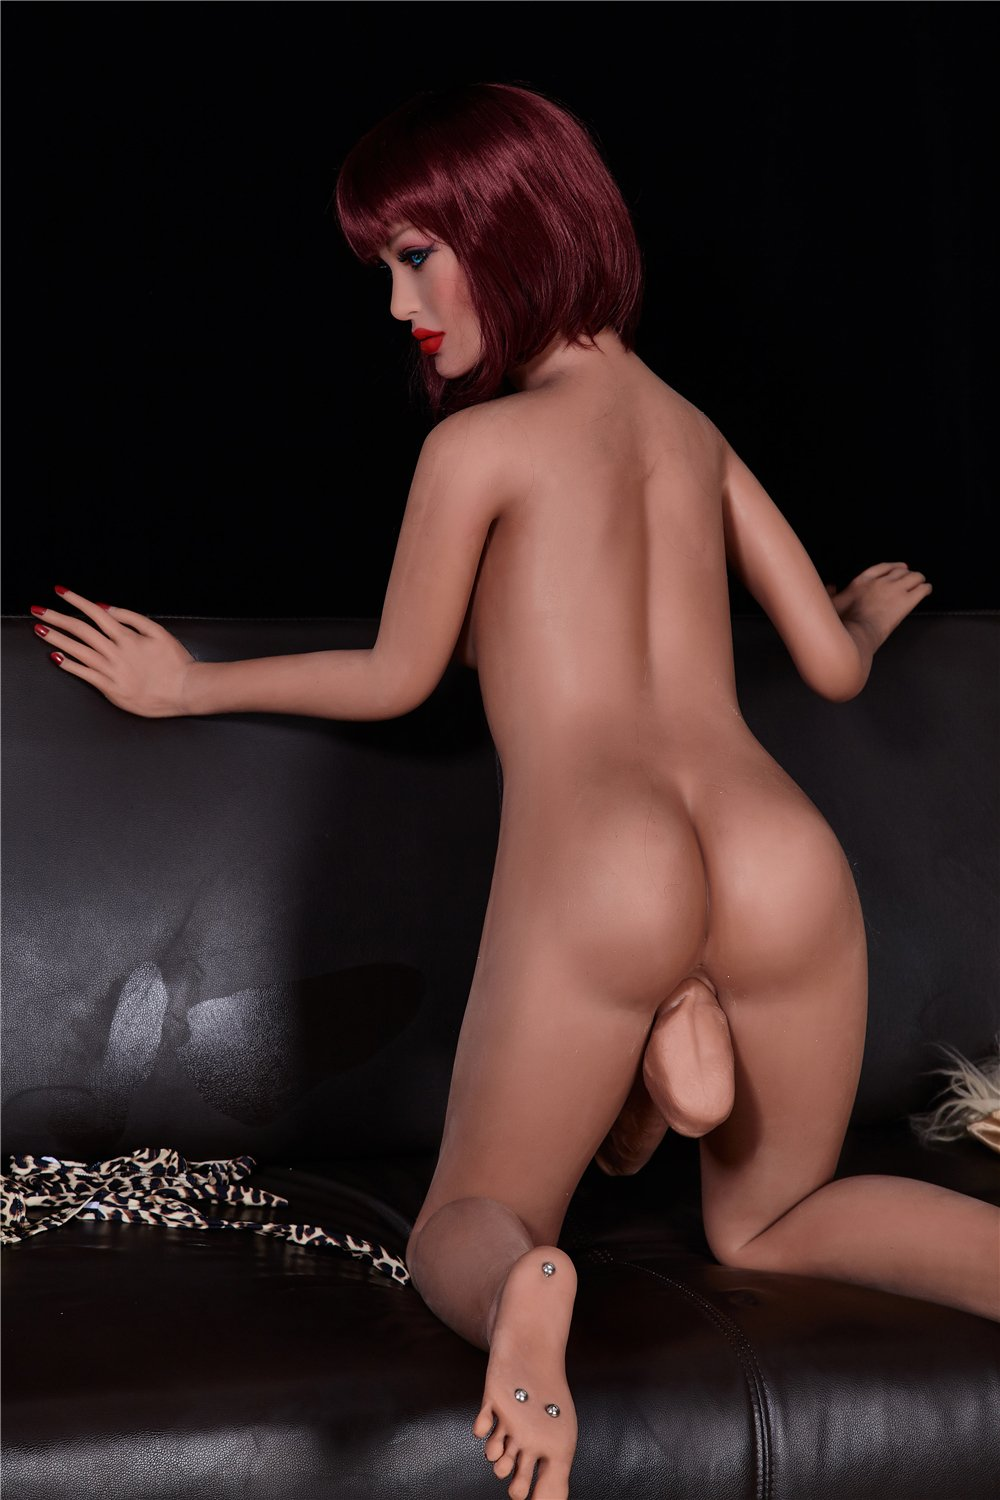 stella 155cm red hair tpe transsexual shemale gay boy sex doll(6)